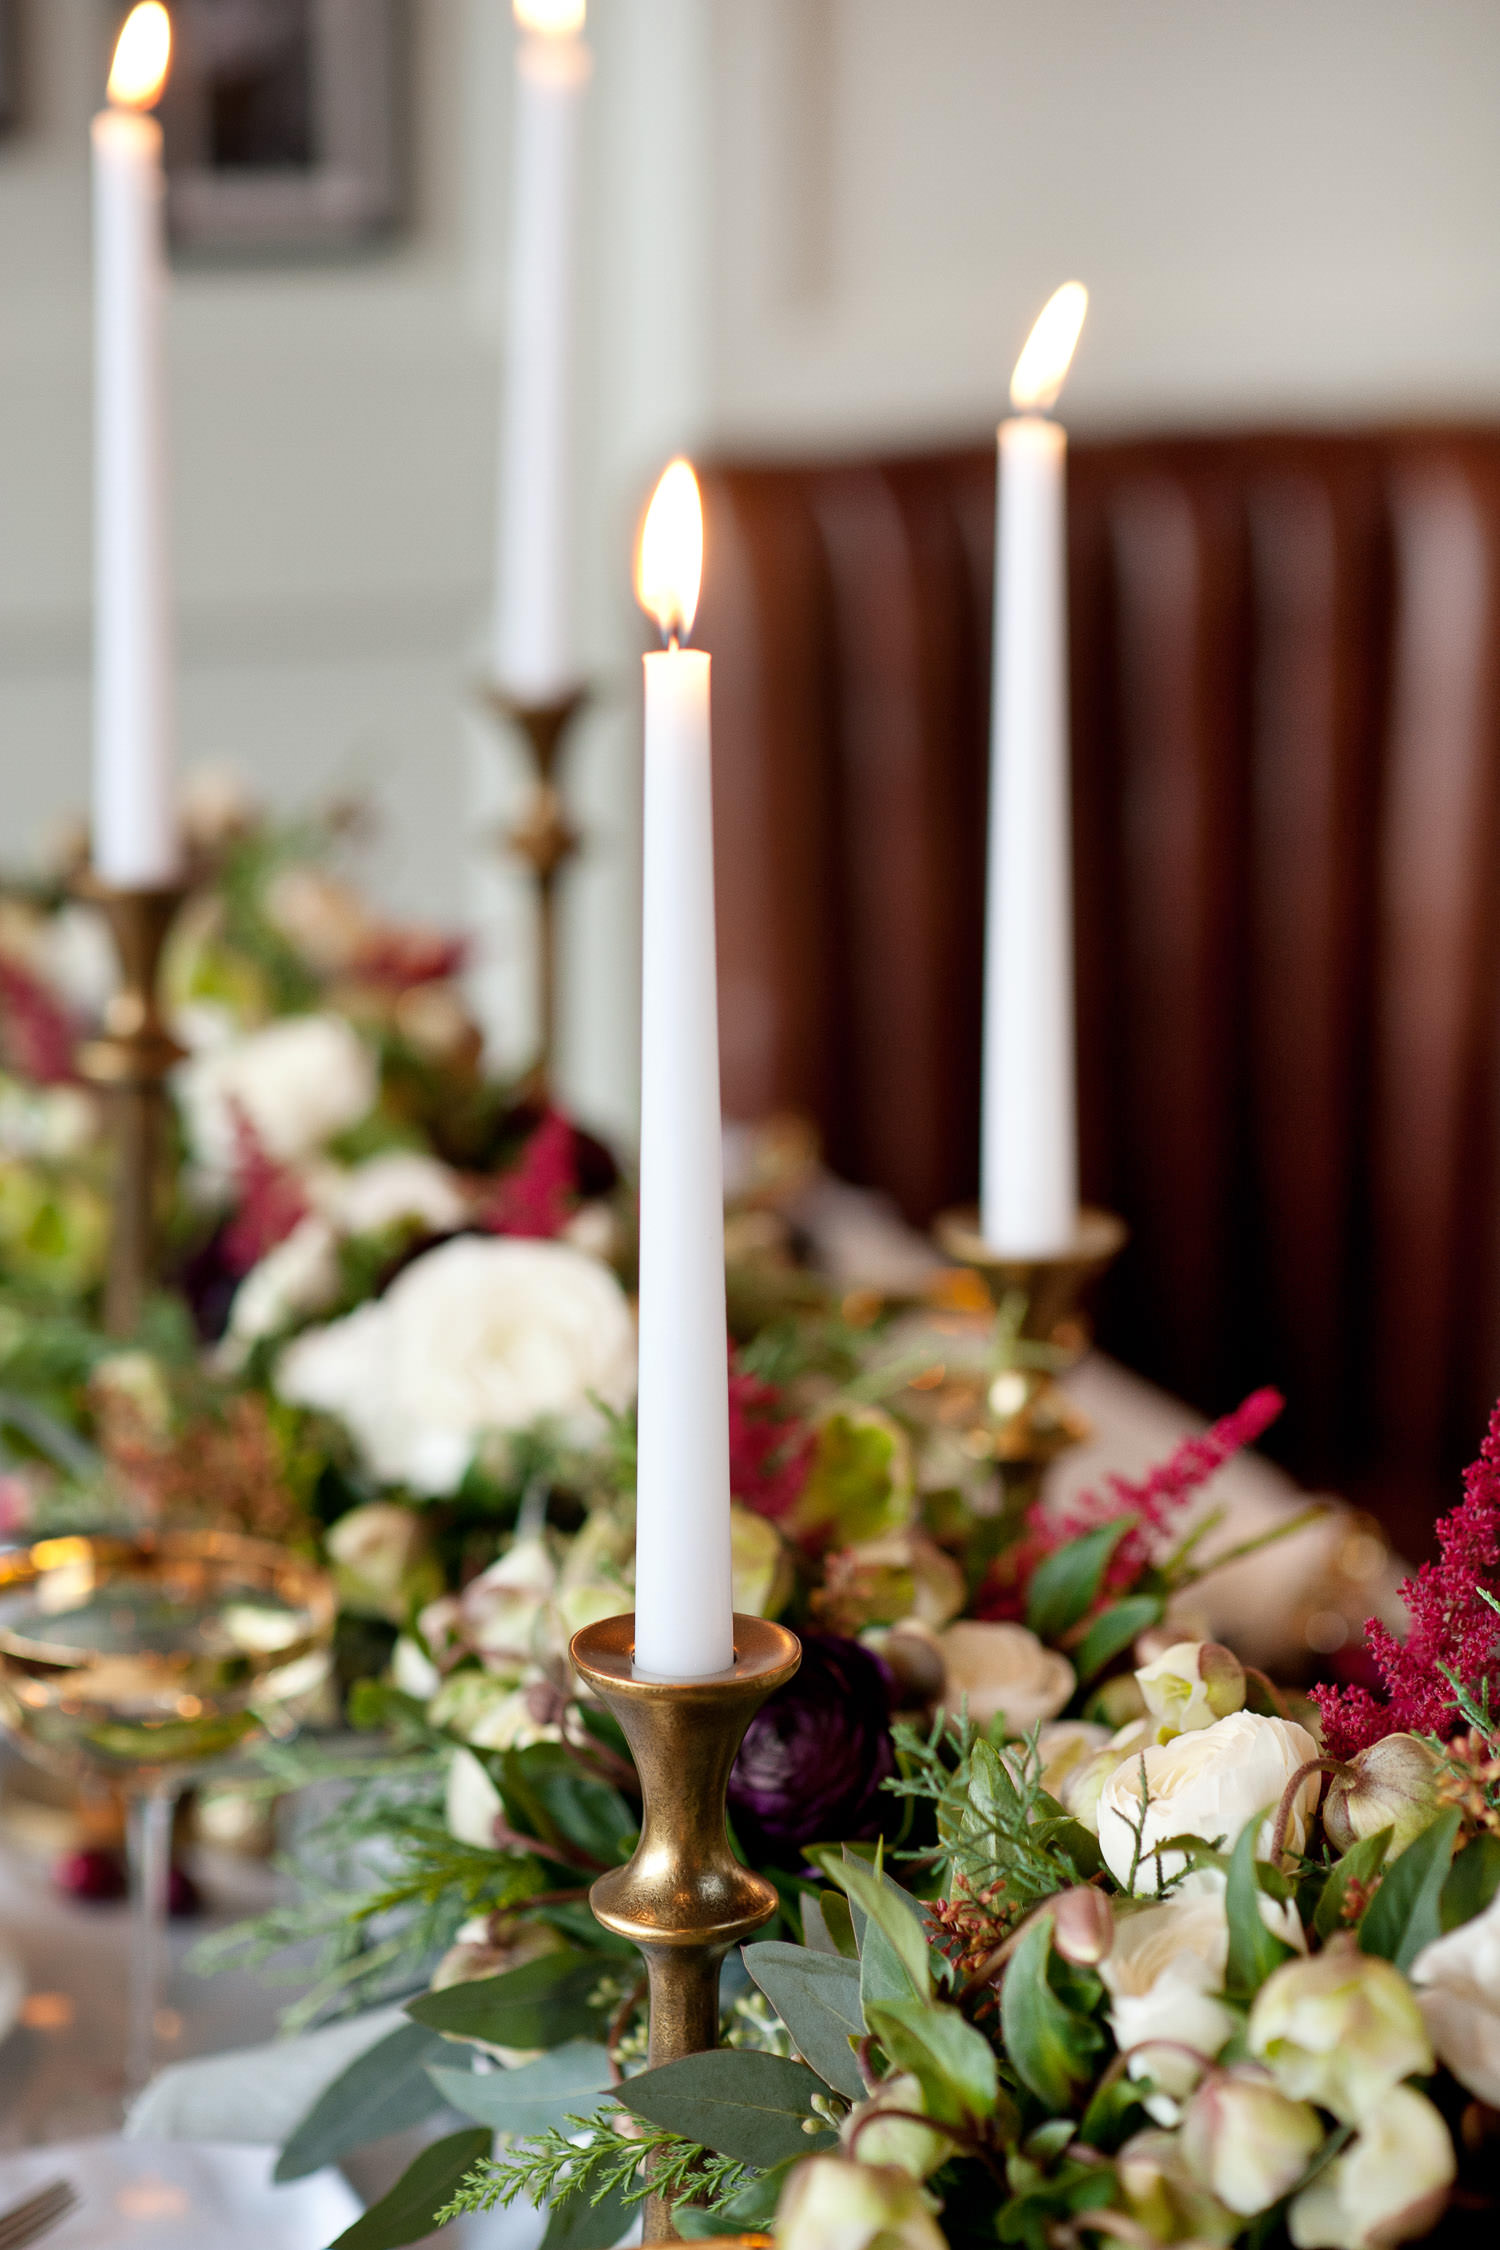 winter blooms and gold candlesticks at a December wedding captured by Tara Whittaker Photography